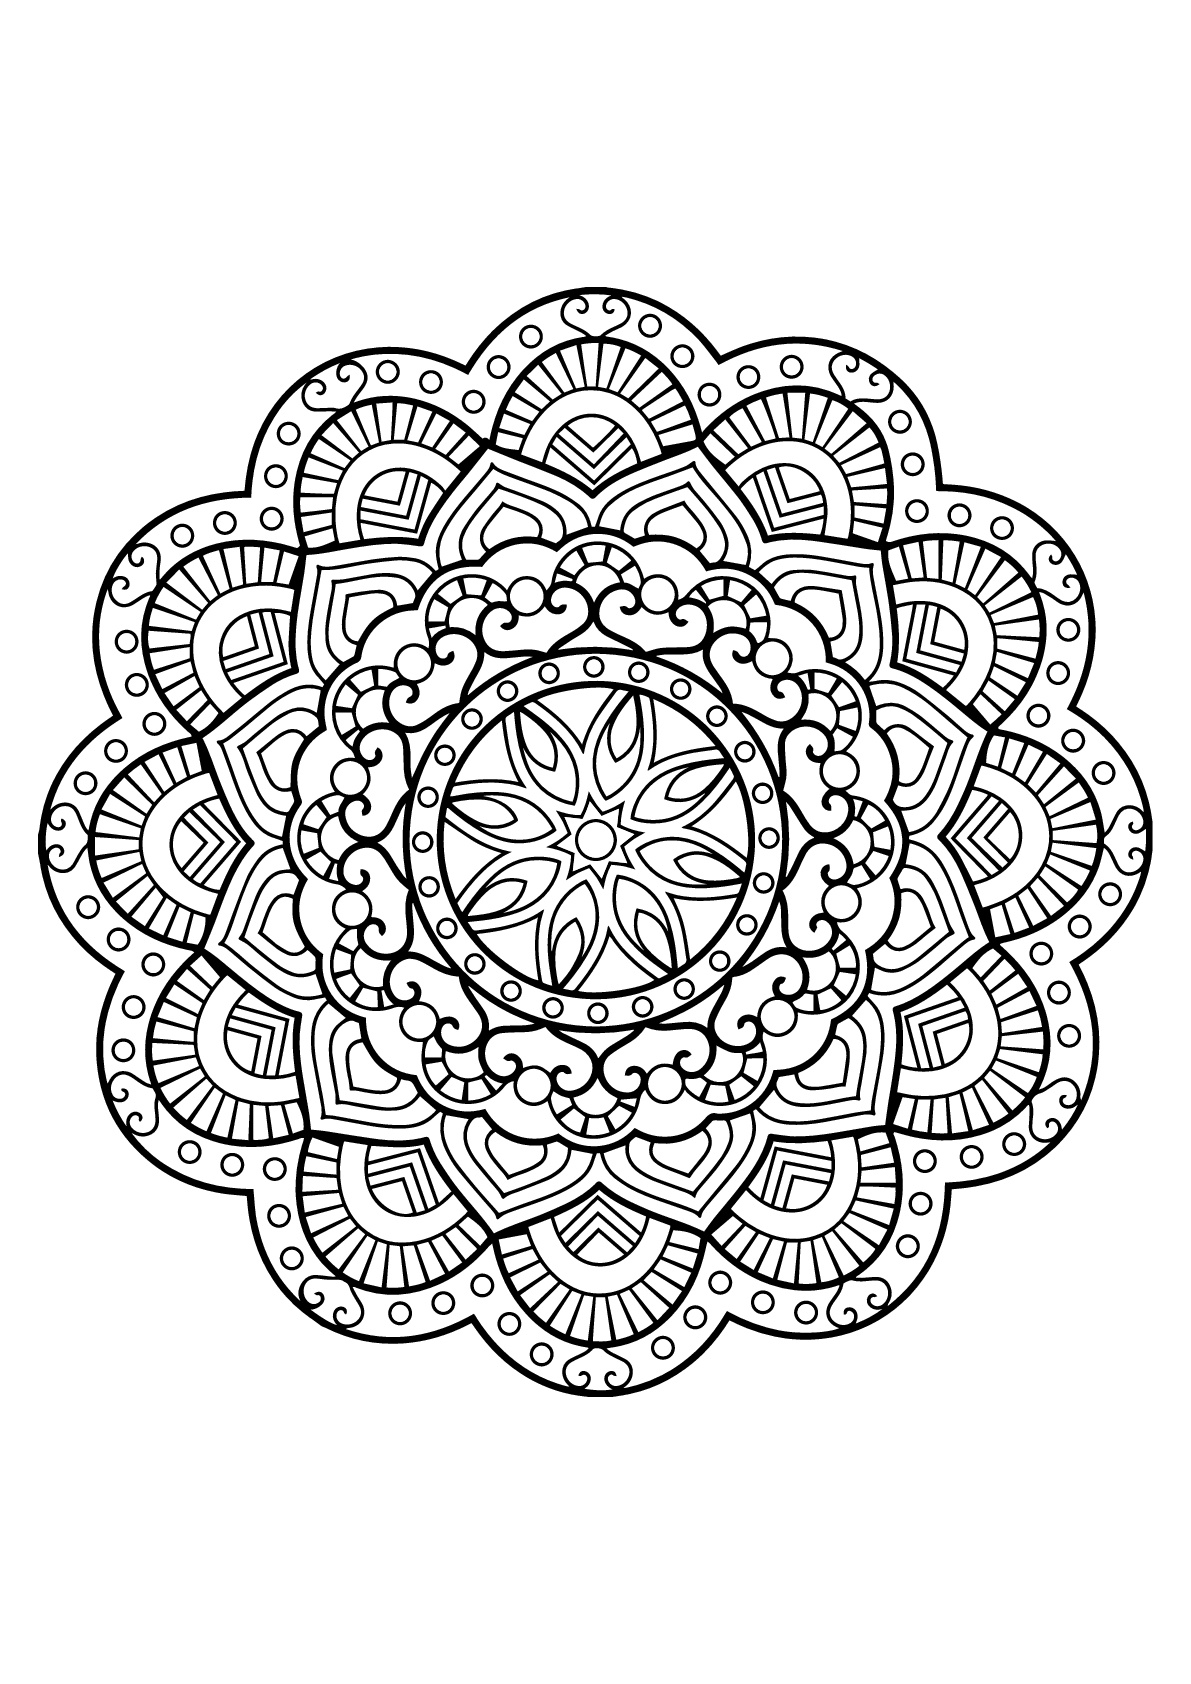 Mandalas - Coloring Pages for Adults